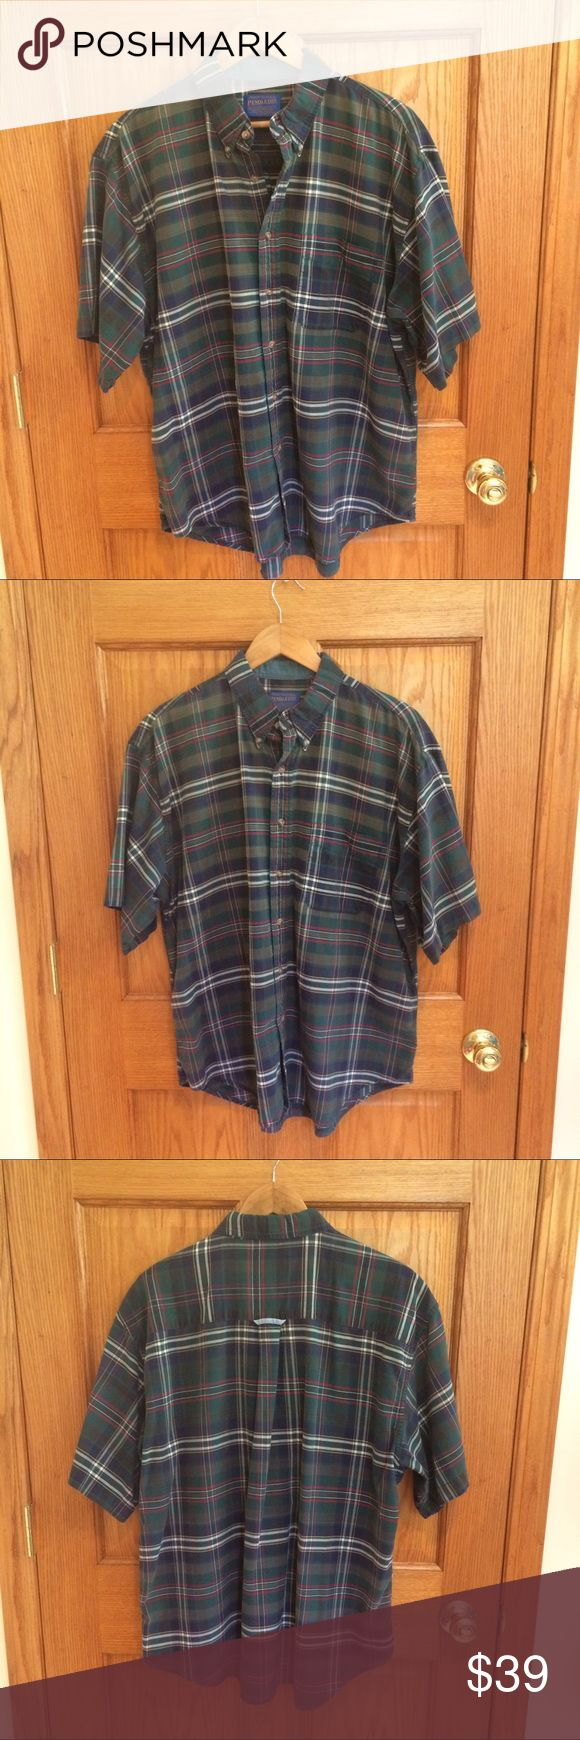 "Vintage Pendleton Button Down Shirt Vintage Pendleton short sleeve button down shirt. 100% cotton. Plaid shirt. Measurements approximately as follows: chest 50"", length - front 30"" and back is 31"". Excellent condition!! Pendleton Shirts Casual Button Down Shirts"